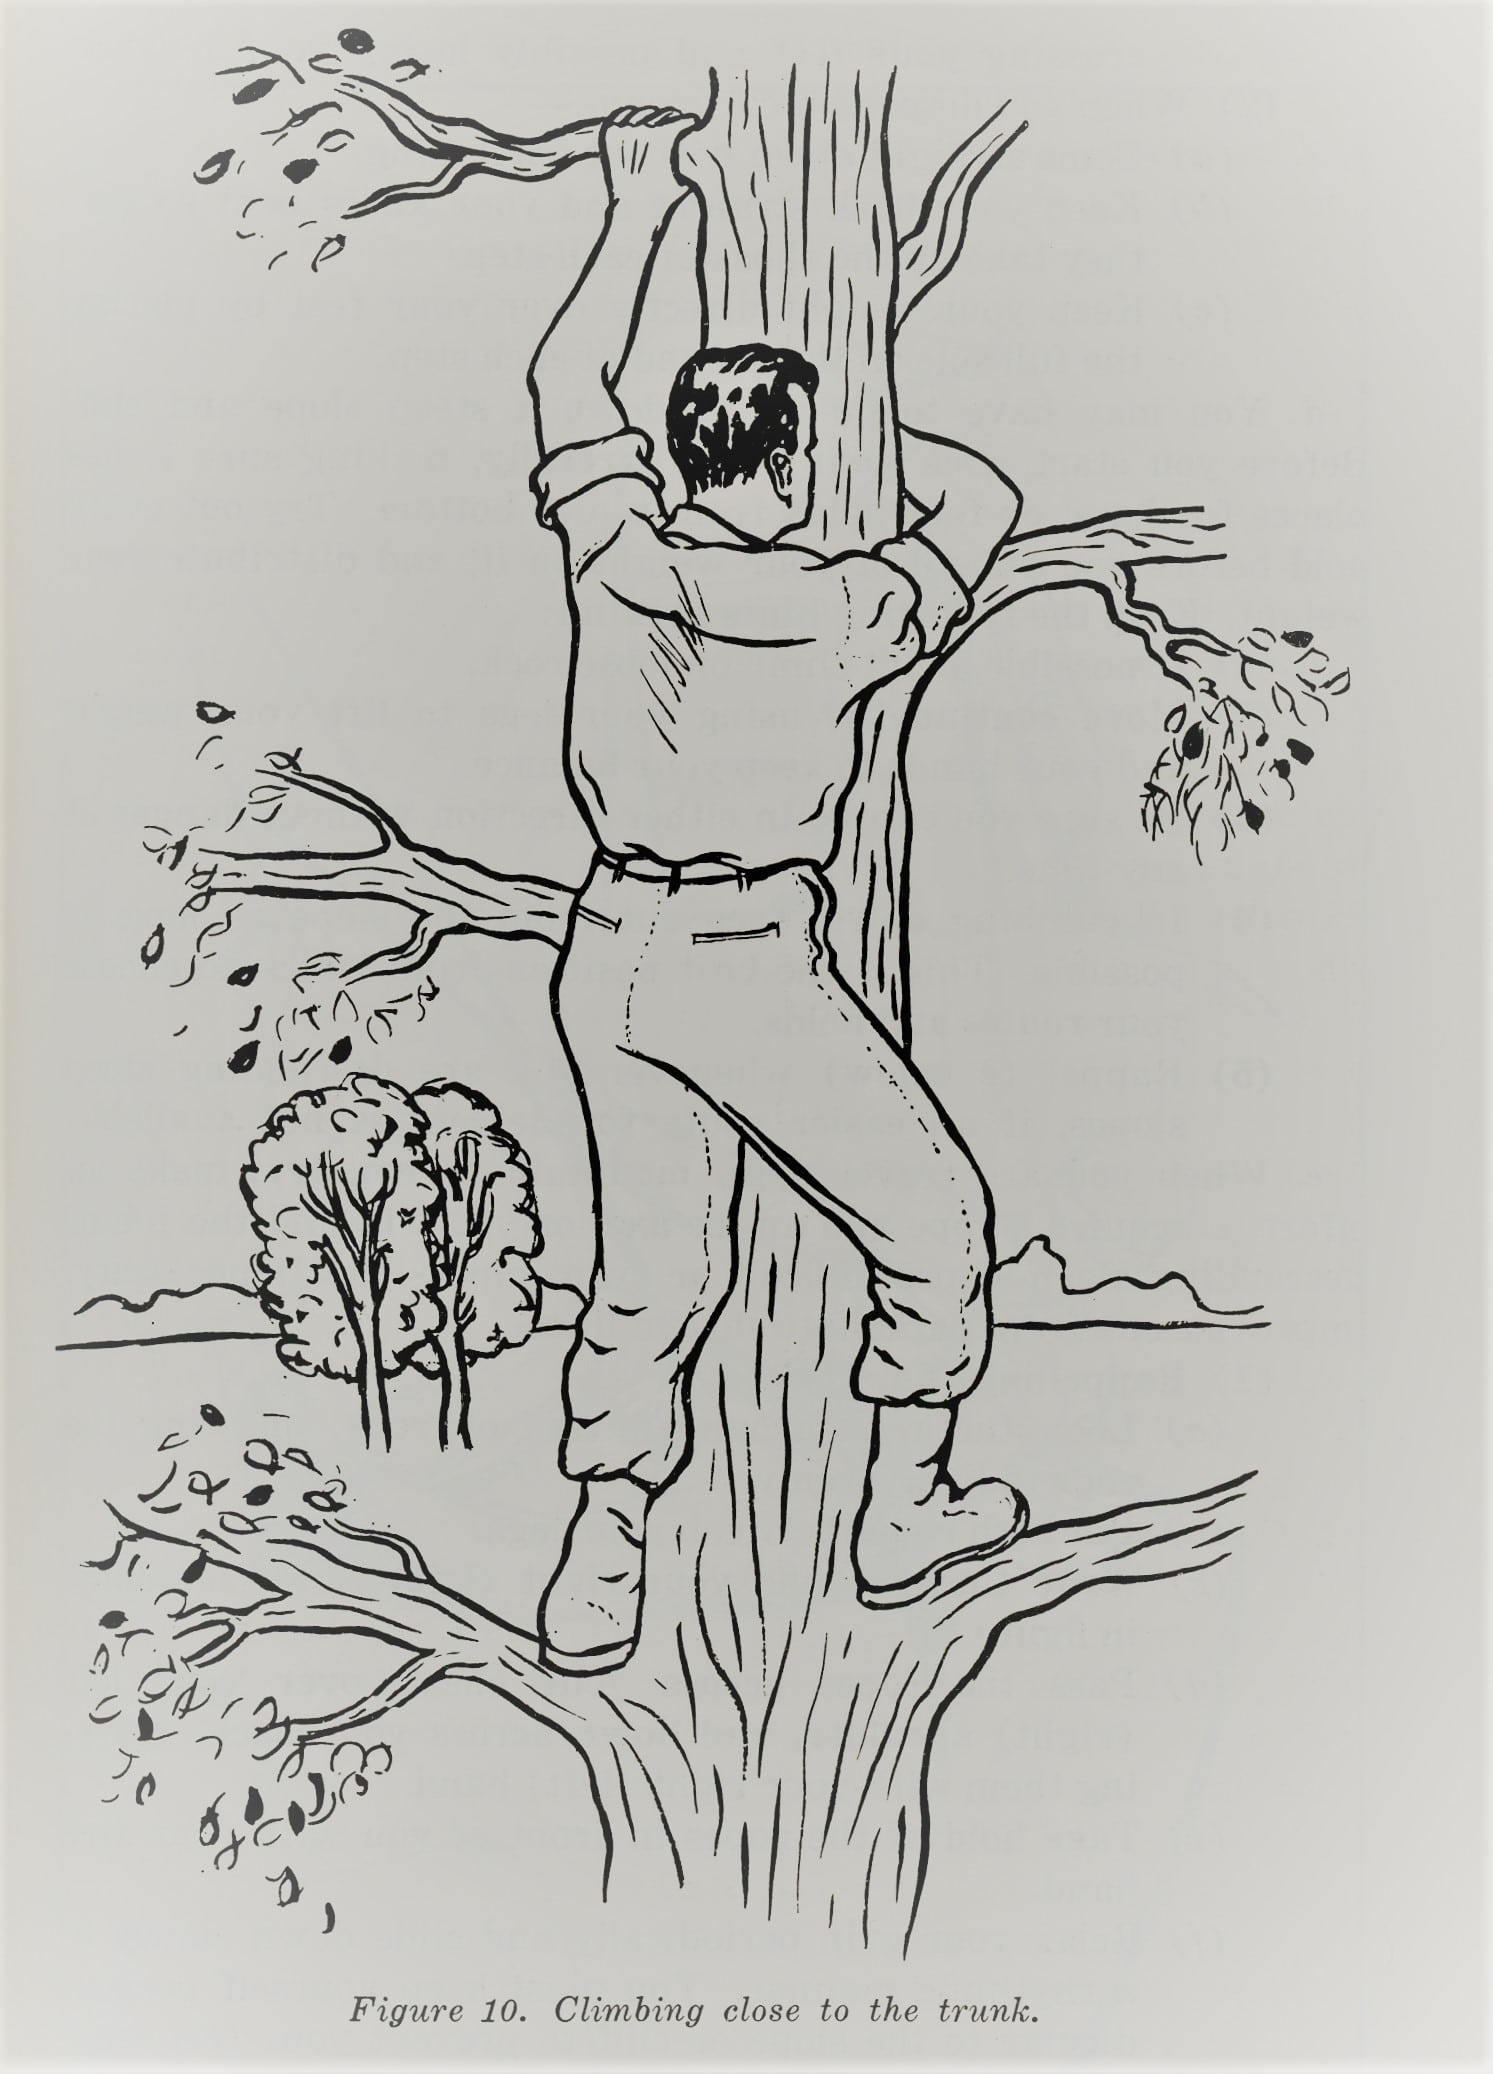 A man climb on a tree illustration.